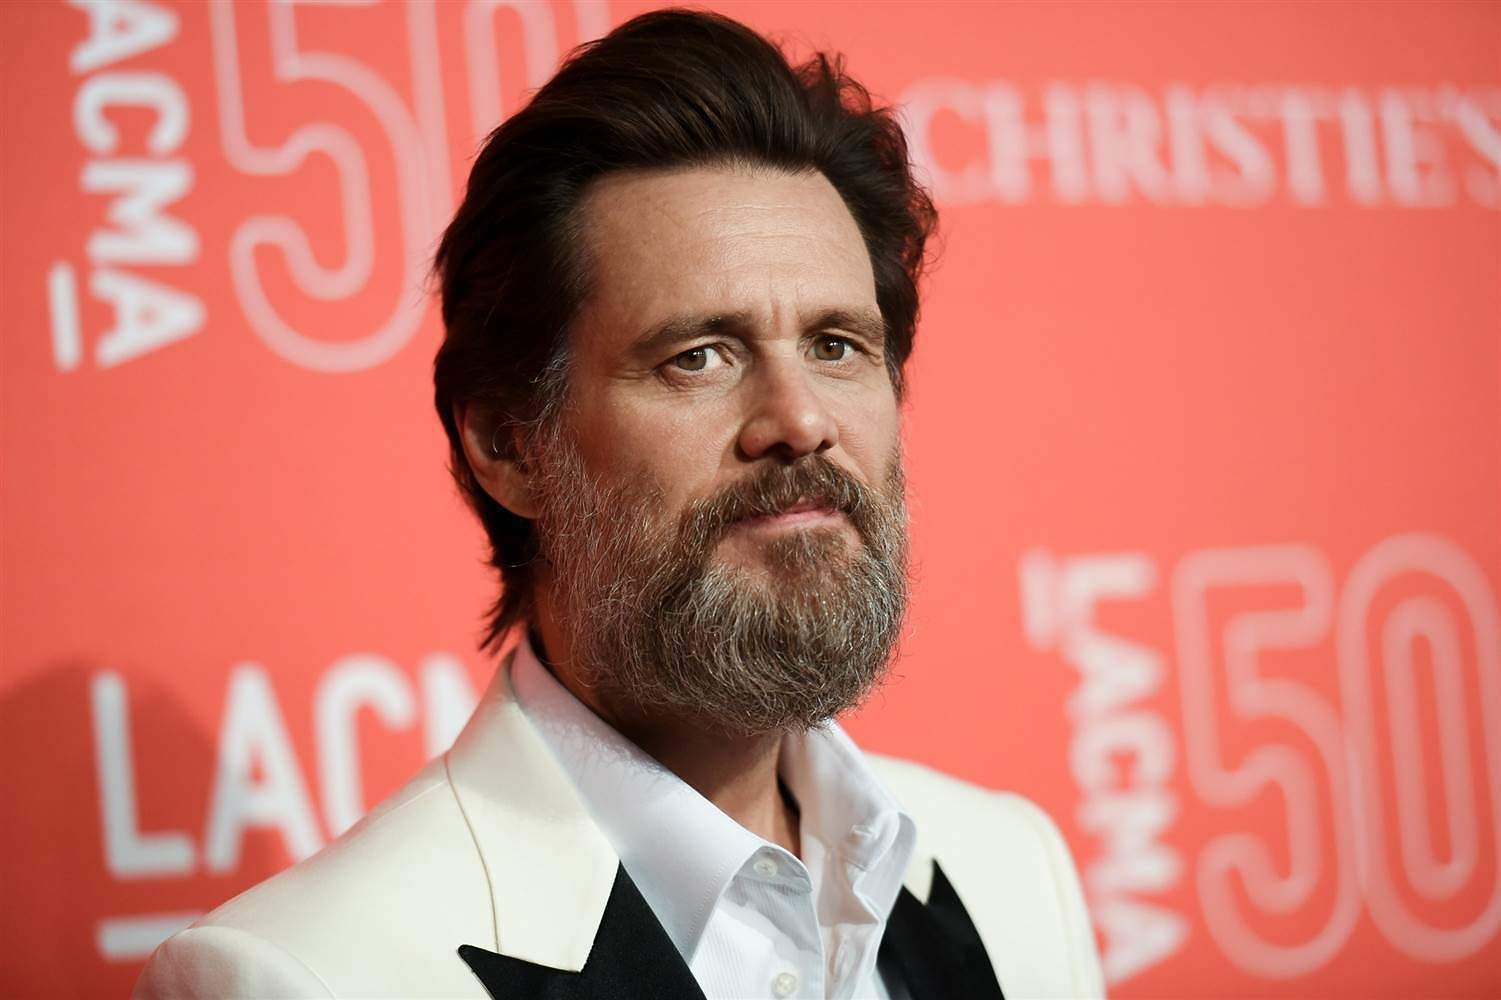 Jim Carrey once homeless